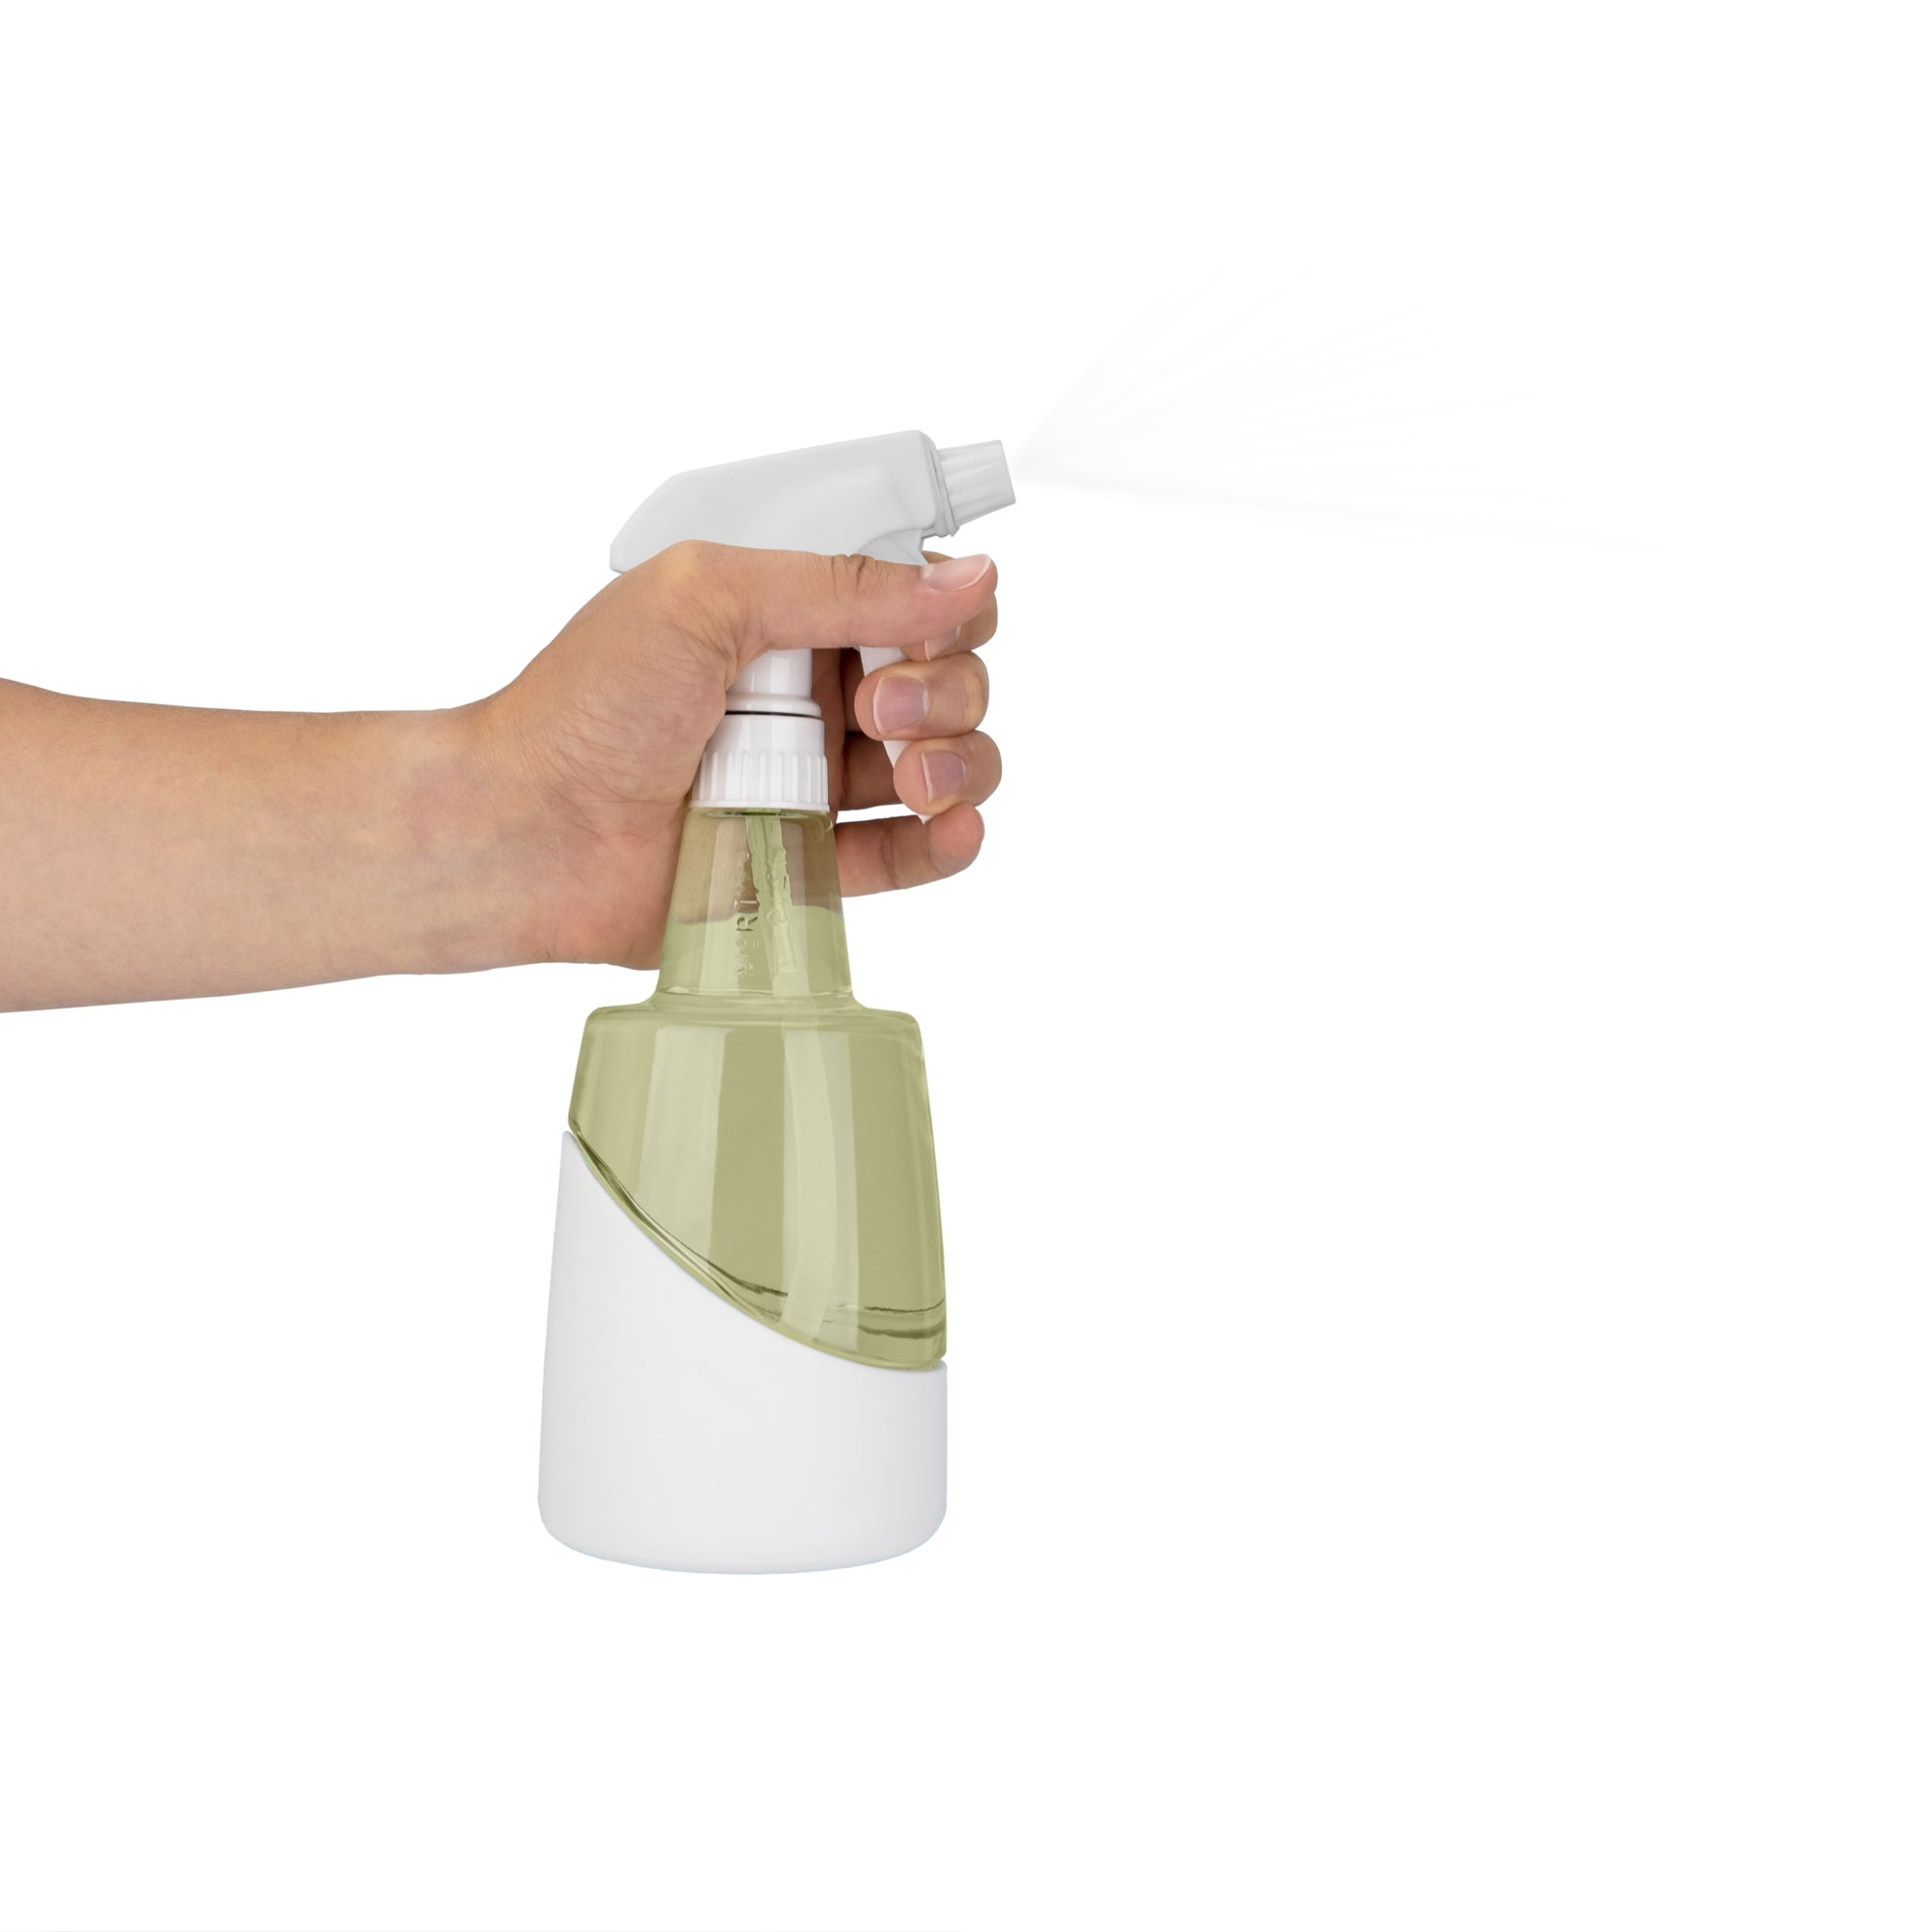 Eco Friendly Refillable Spray Cleaner + Essential Oils